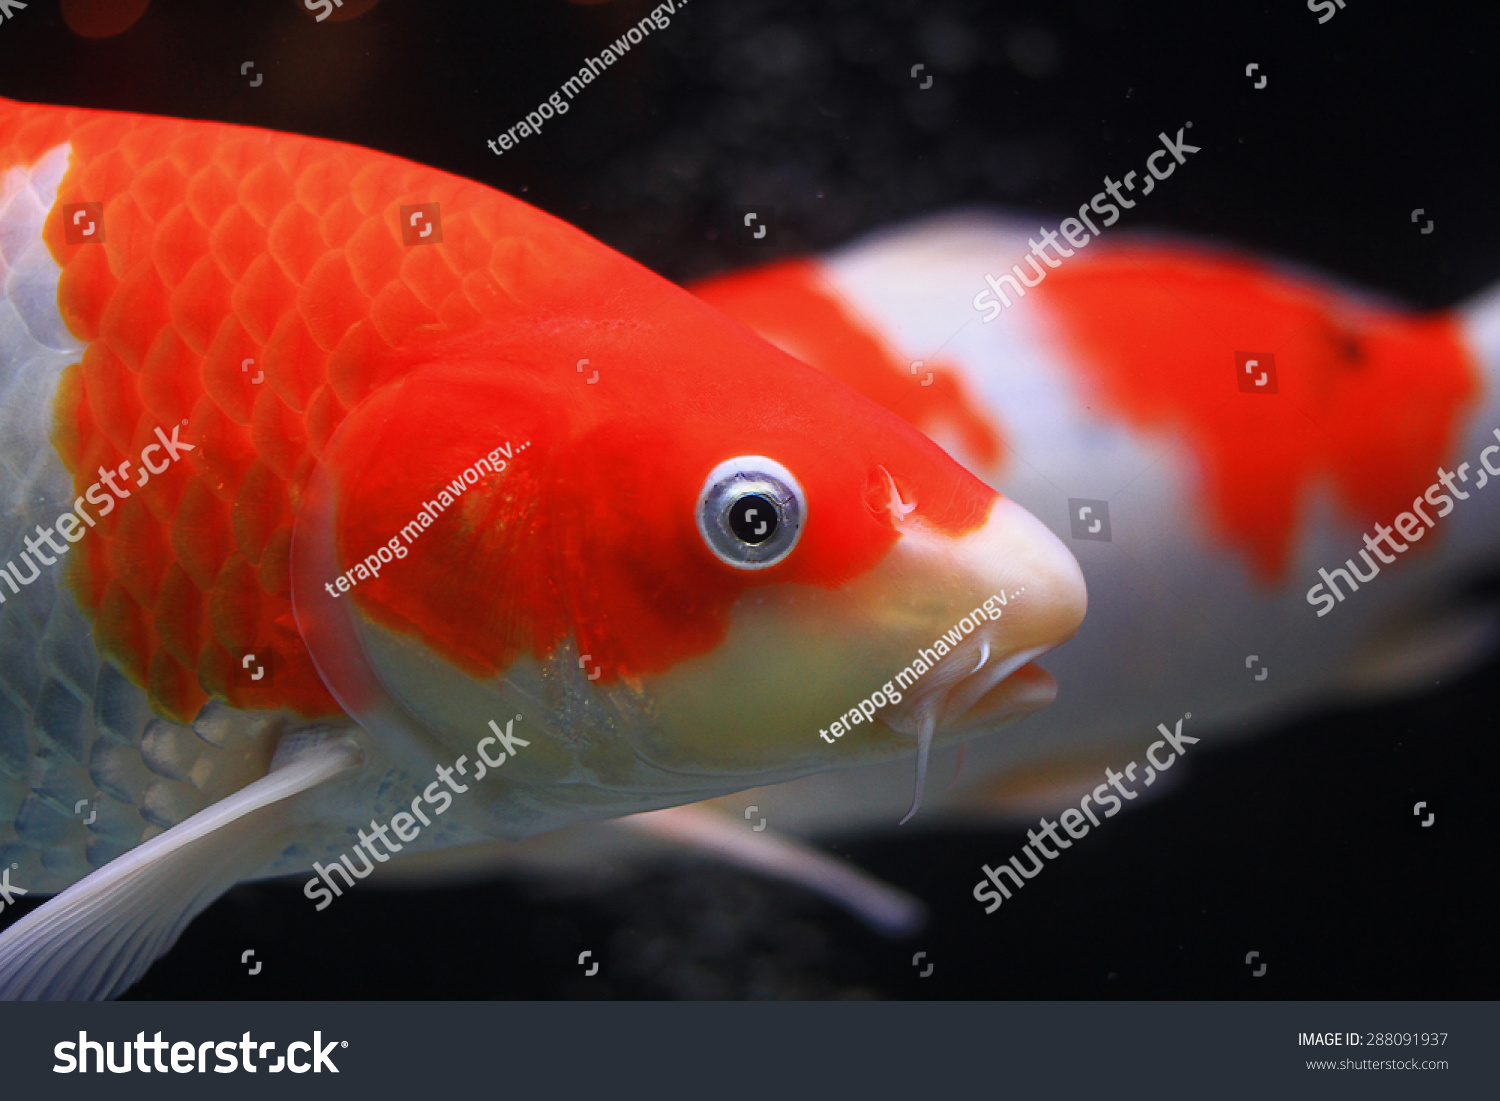 Orange Koi Fish Stock Photo (Royalty Free) 288091937 - Shutterstock